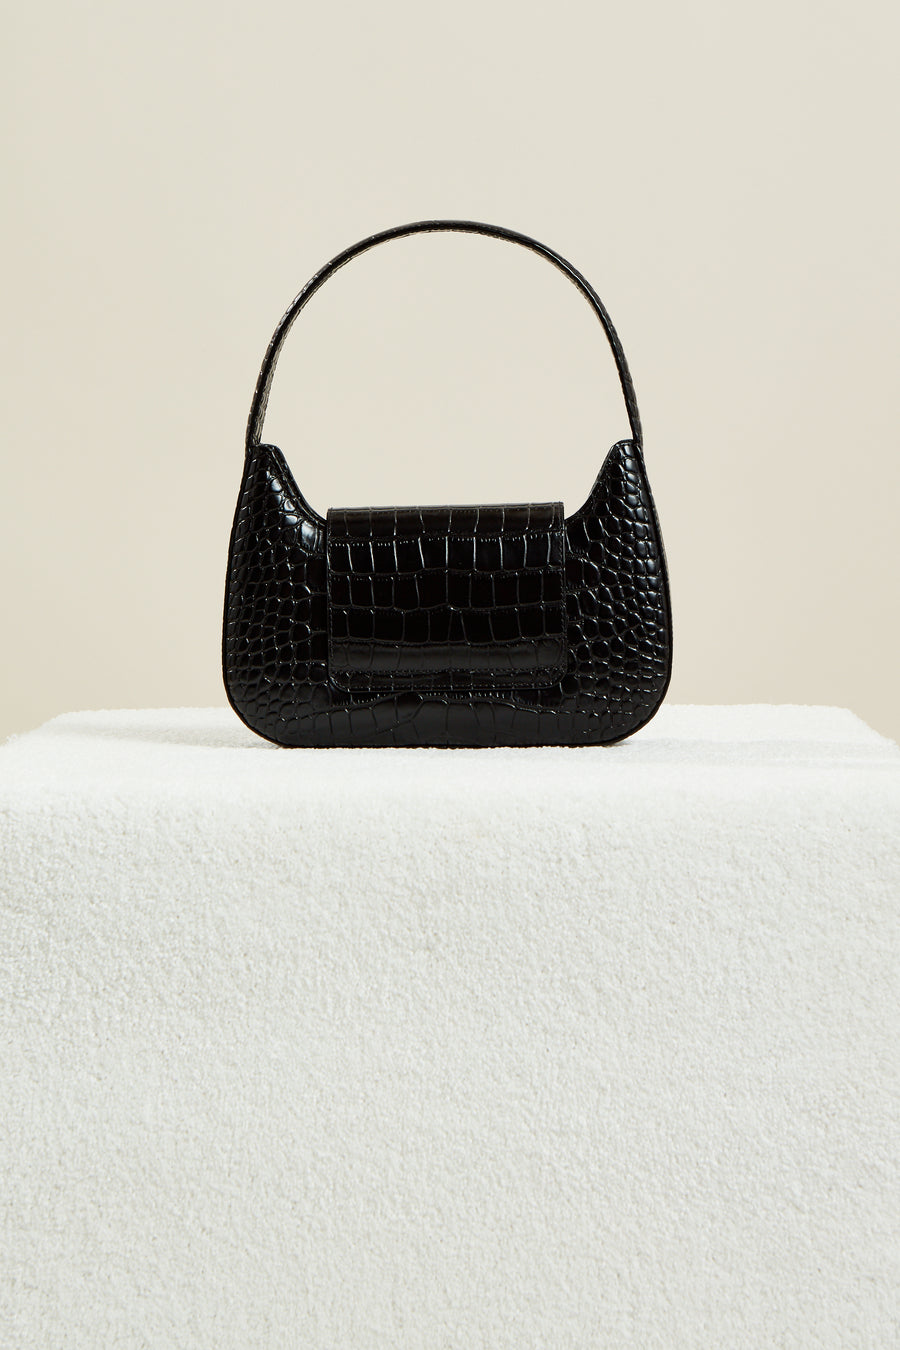 Retro Bag in Black